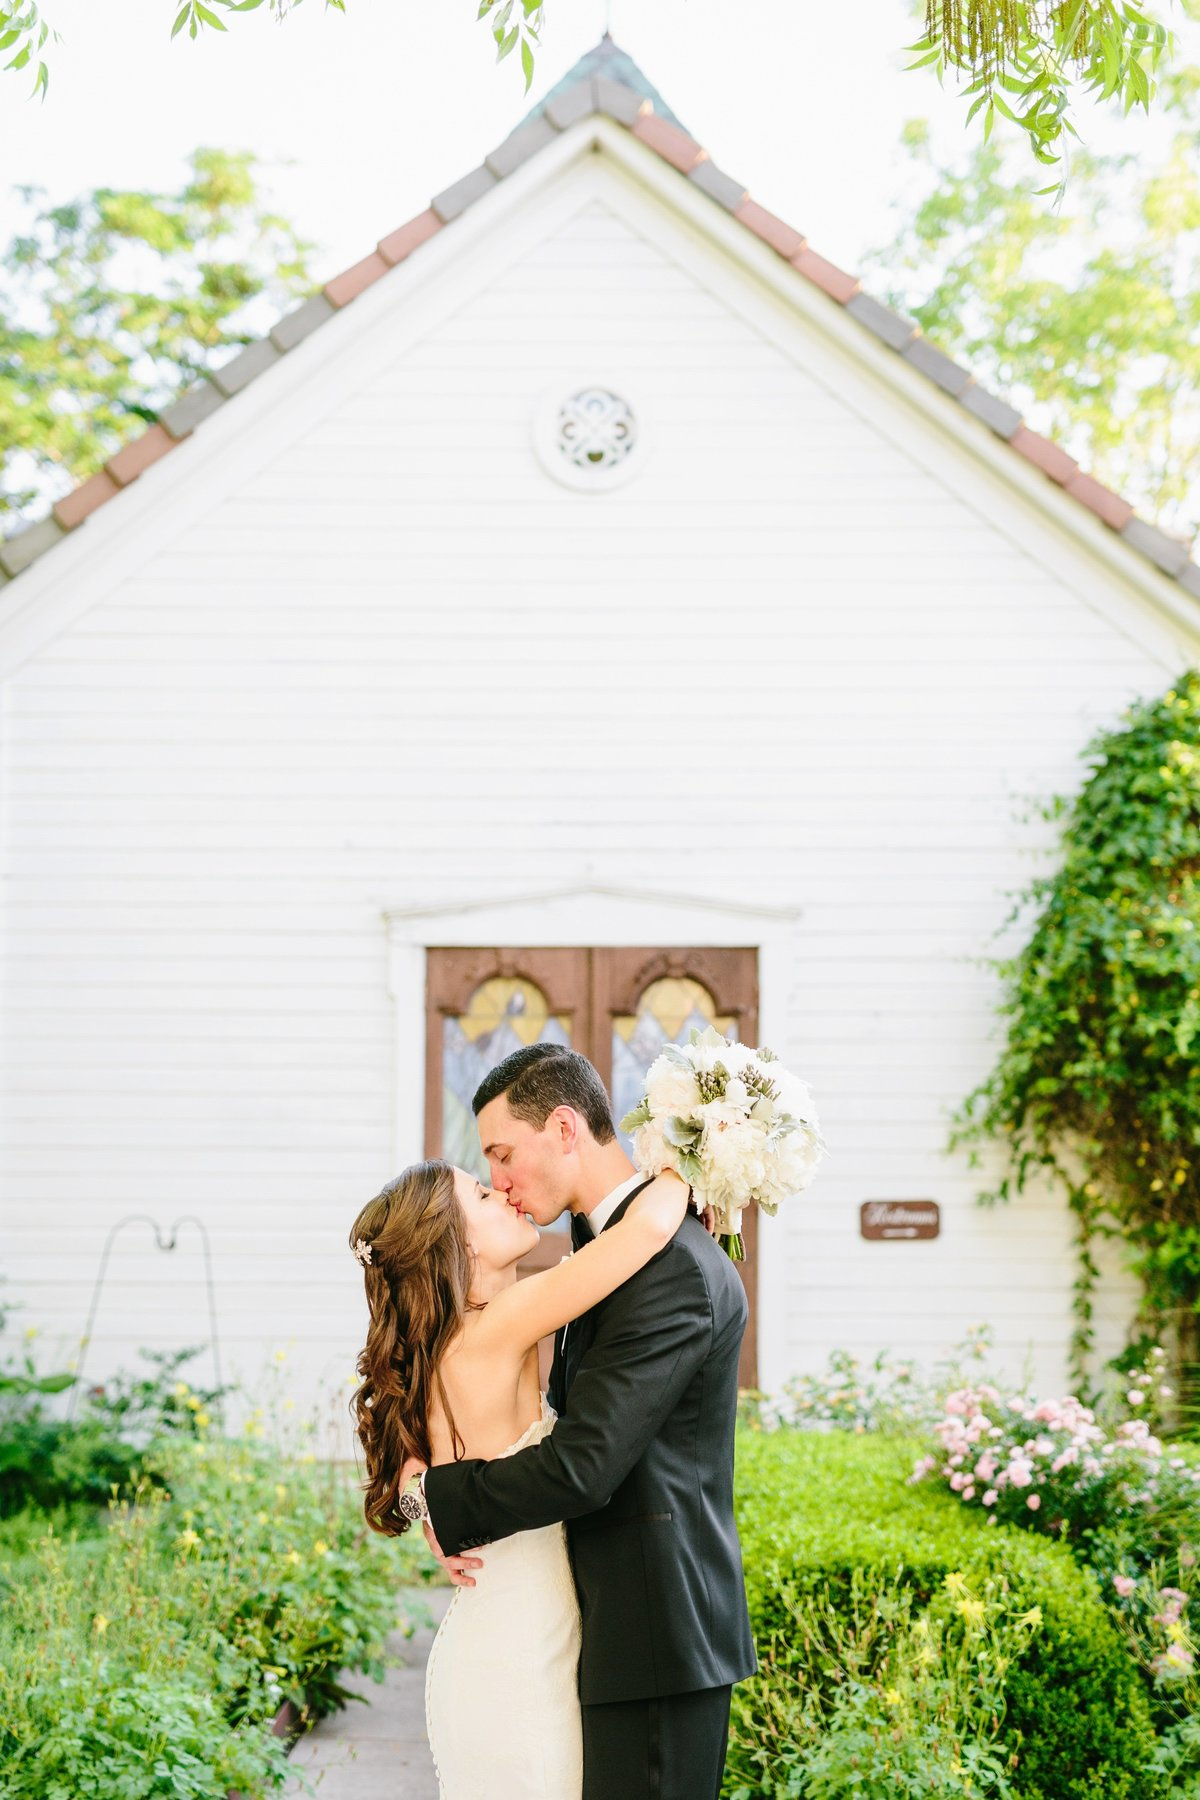 Best California Wedding Photographer-Jodee Debes Photography-189